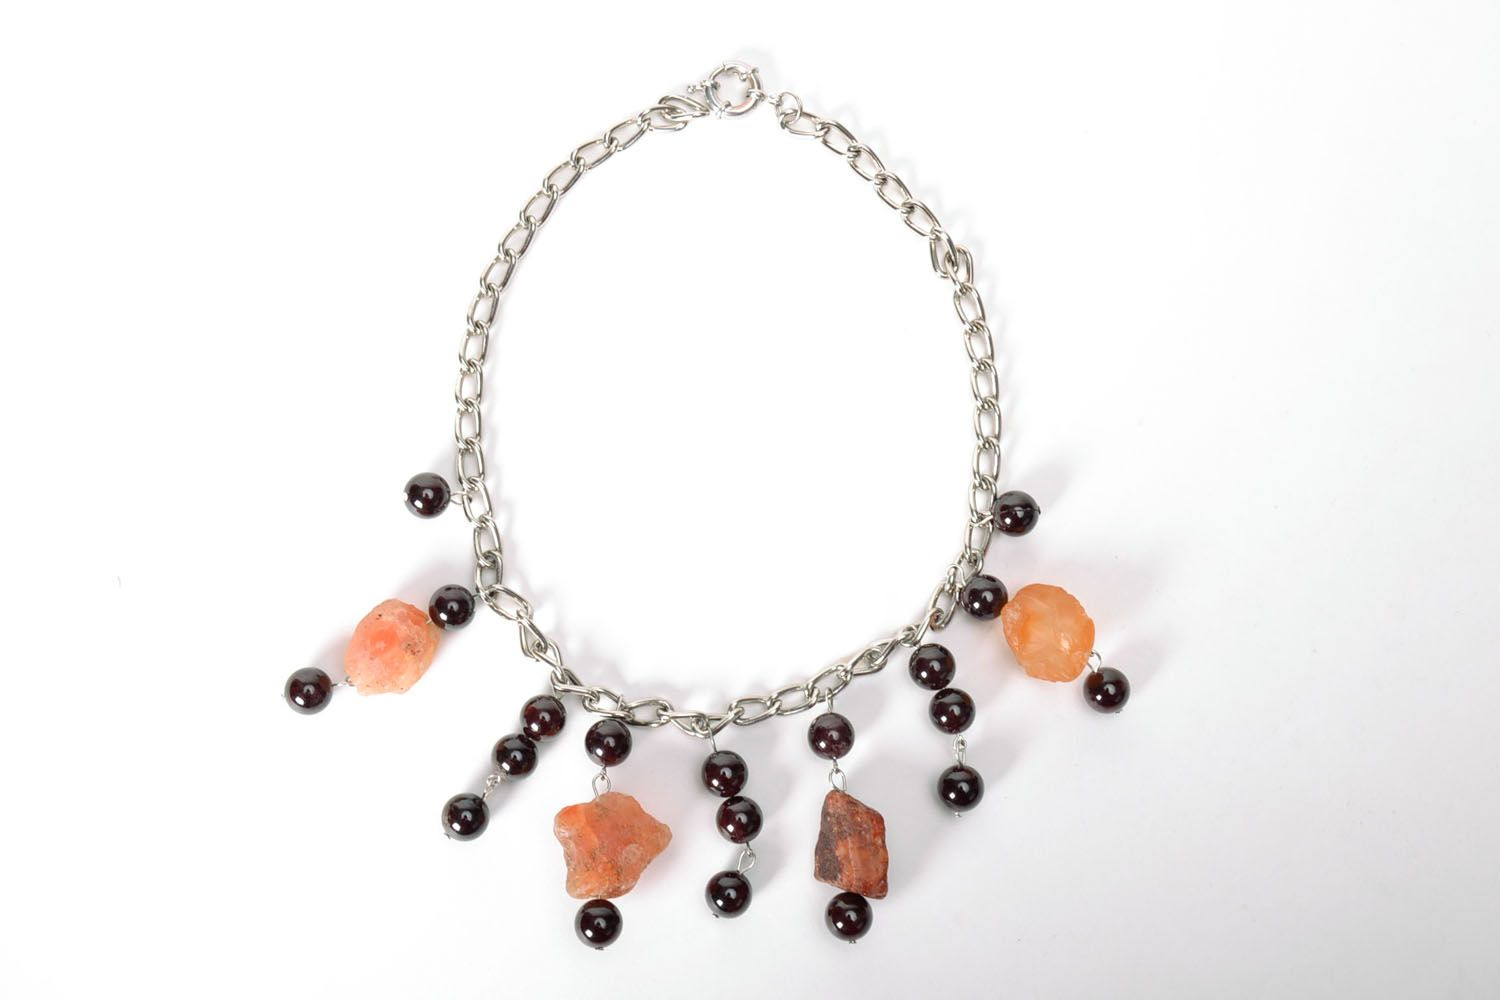 Fashionable necklace with natural stones photo 2